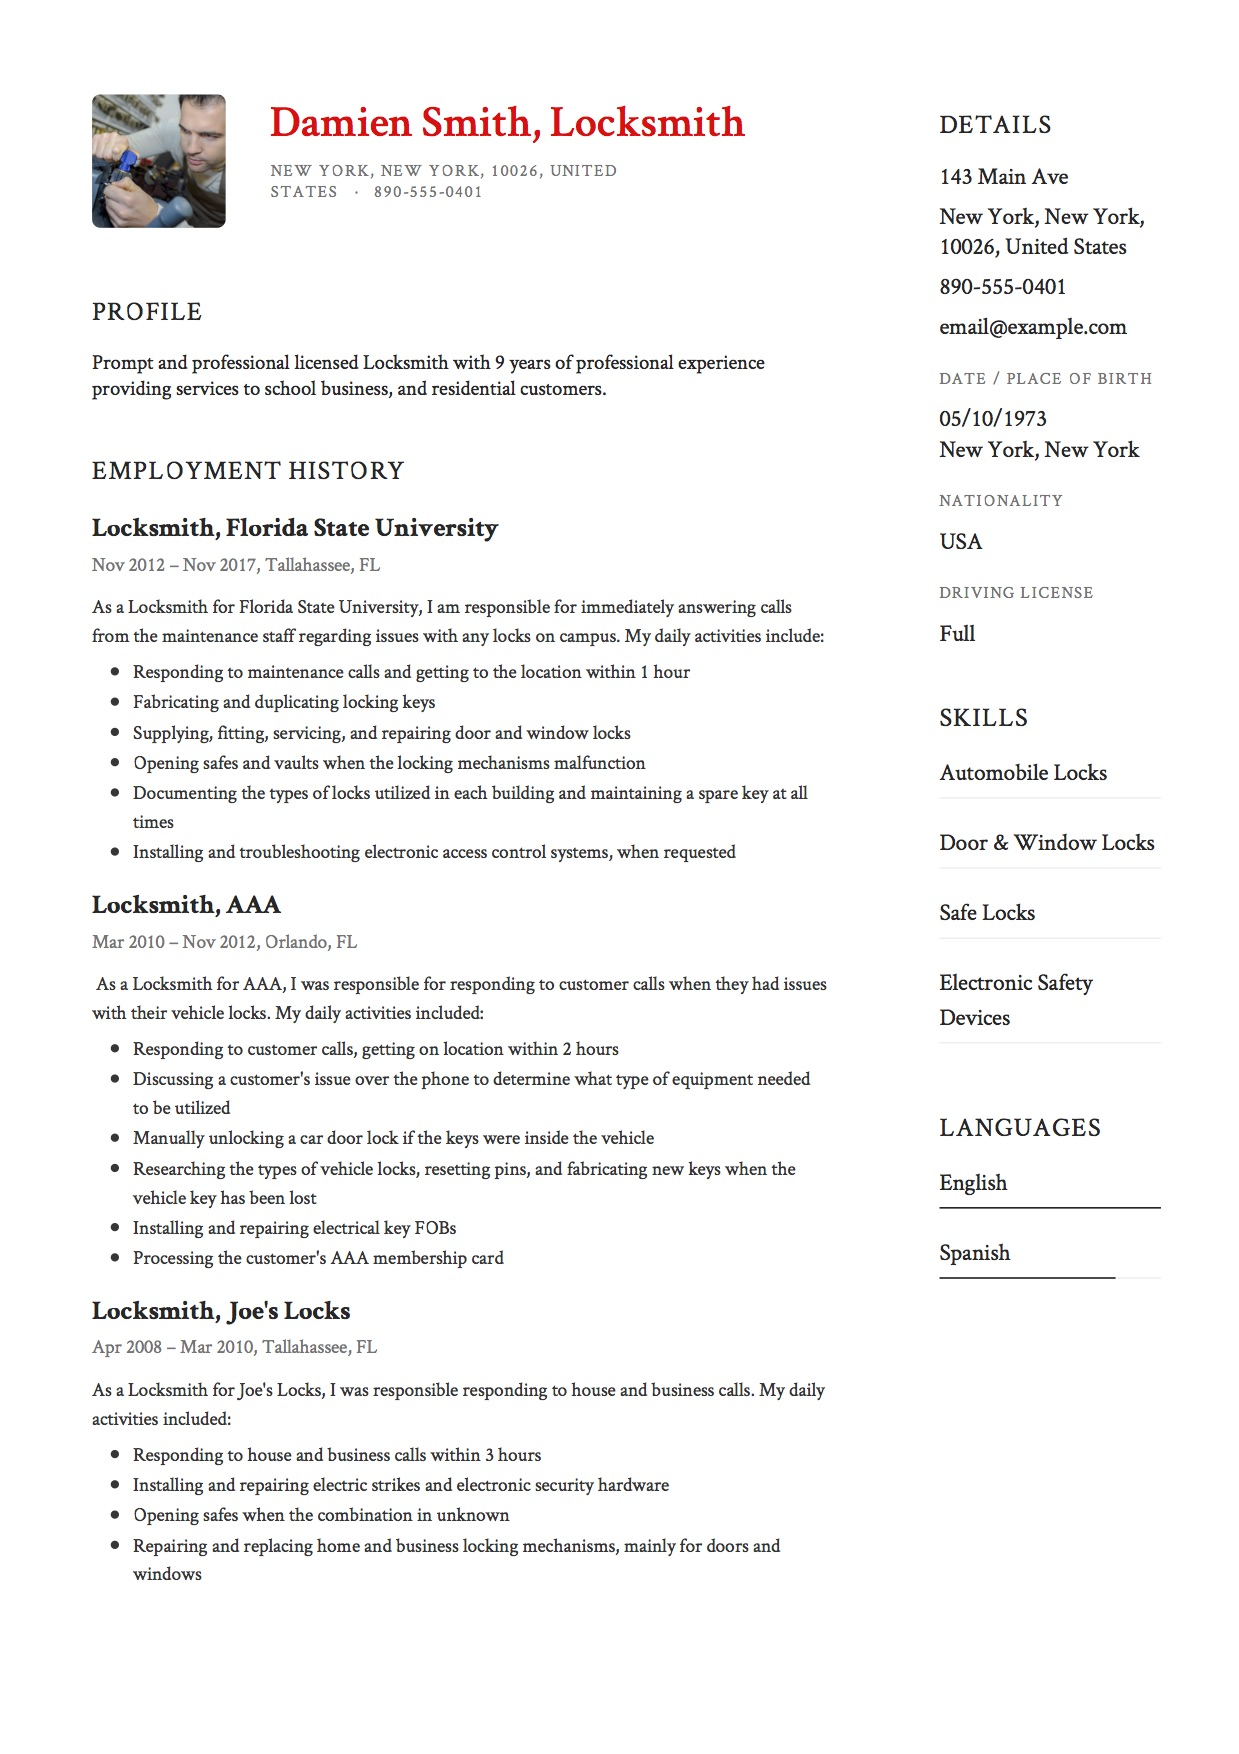 Sample Resume Locksmith